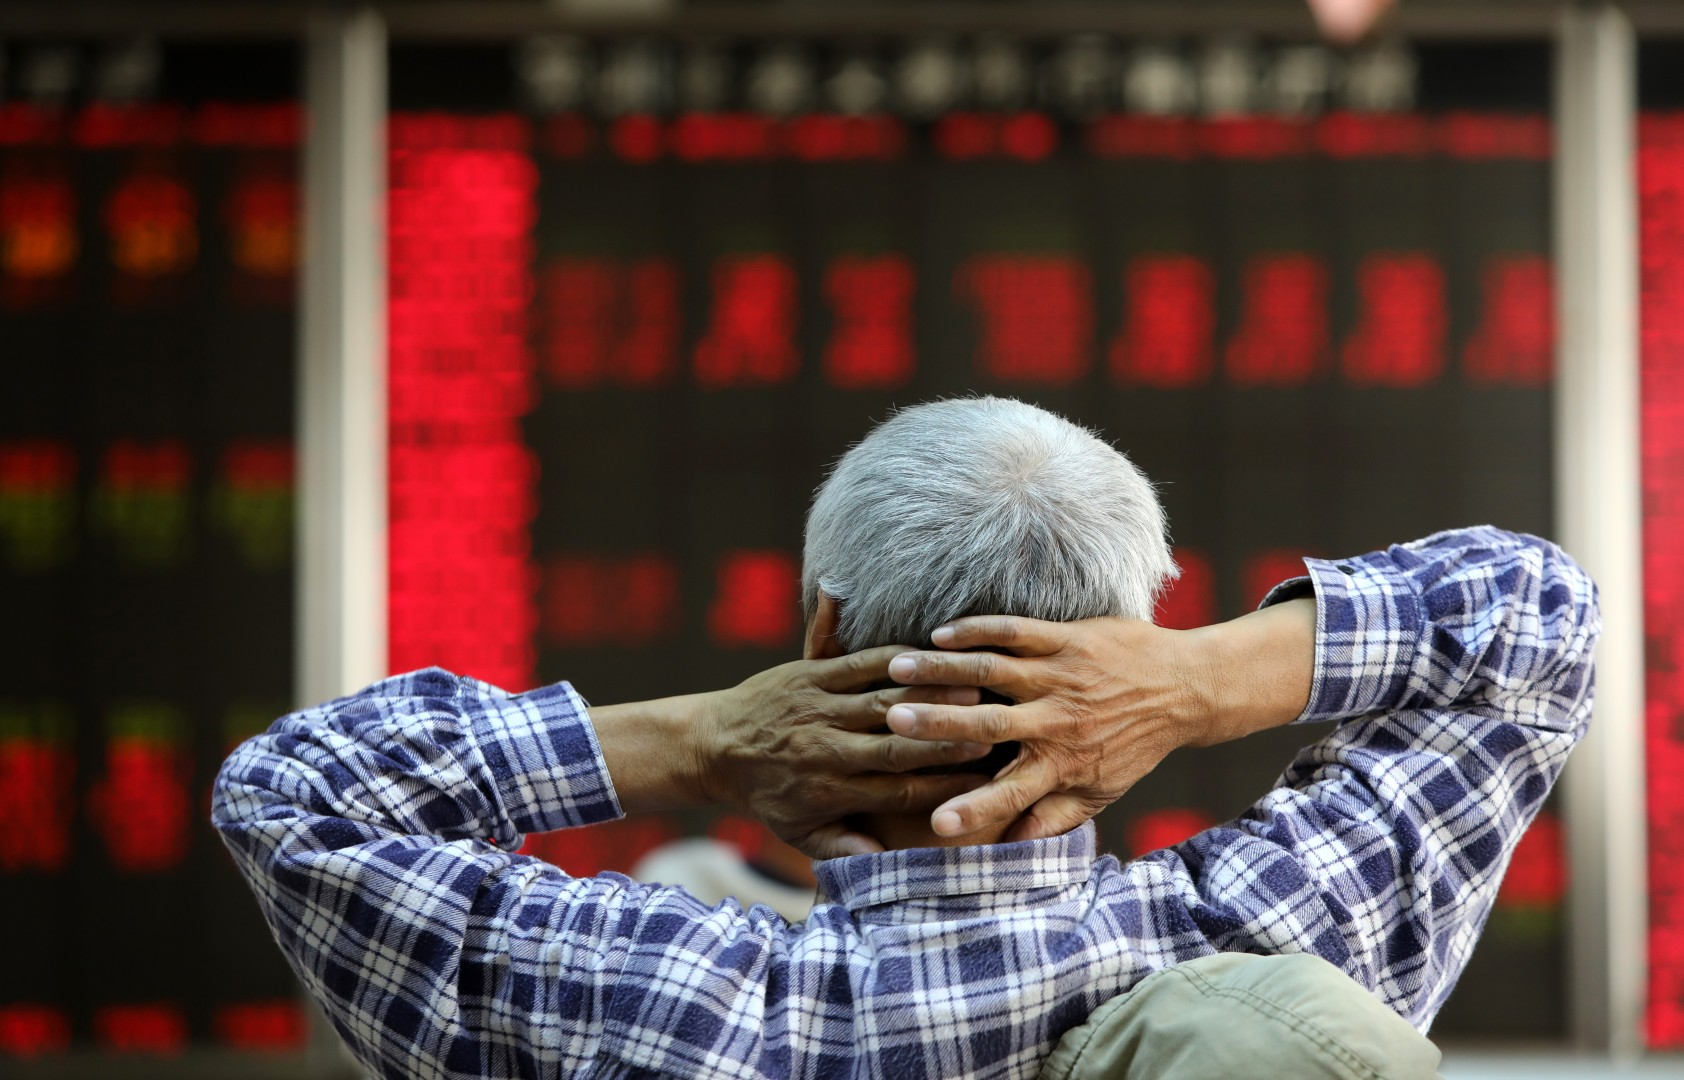 Shanghai stock picker foresaw last year's slump  Can his